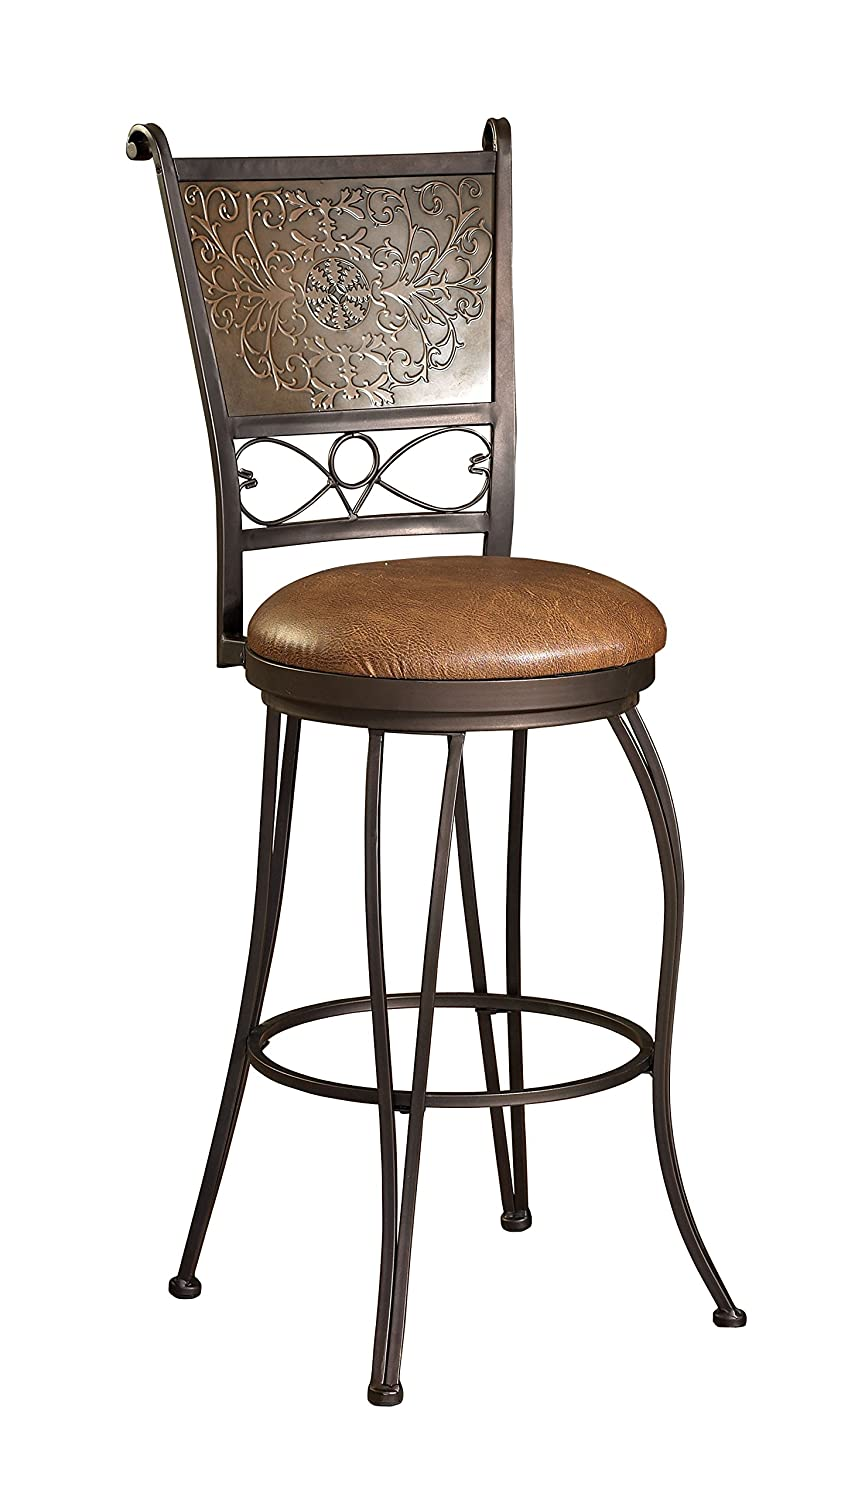 Amazon.com Powell Furniture Bronze with Muted Copper St&ed Back Bar Stool 30-Inch Kitchen u0026 Dining  sc 1 st  Amazon.com & Amazon.com: Powell Furniture Bronze with Muted Copper Stamped Back ... islam-shia.org